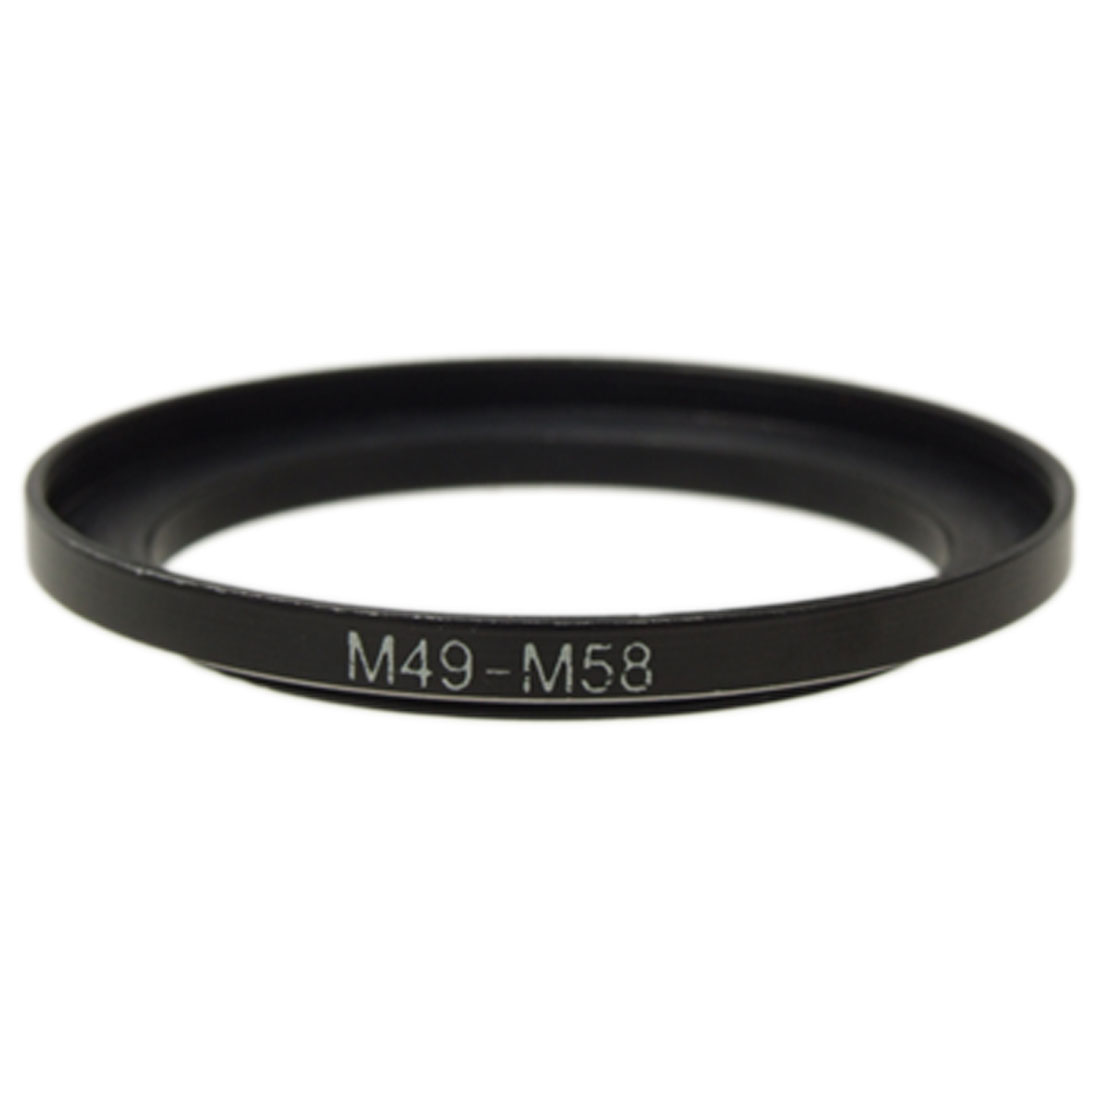 Camera Lens Filter Replacement Step Up Ring Adapter 49mm-58mm